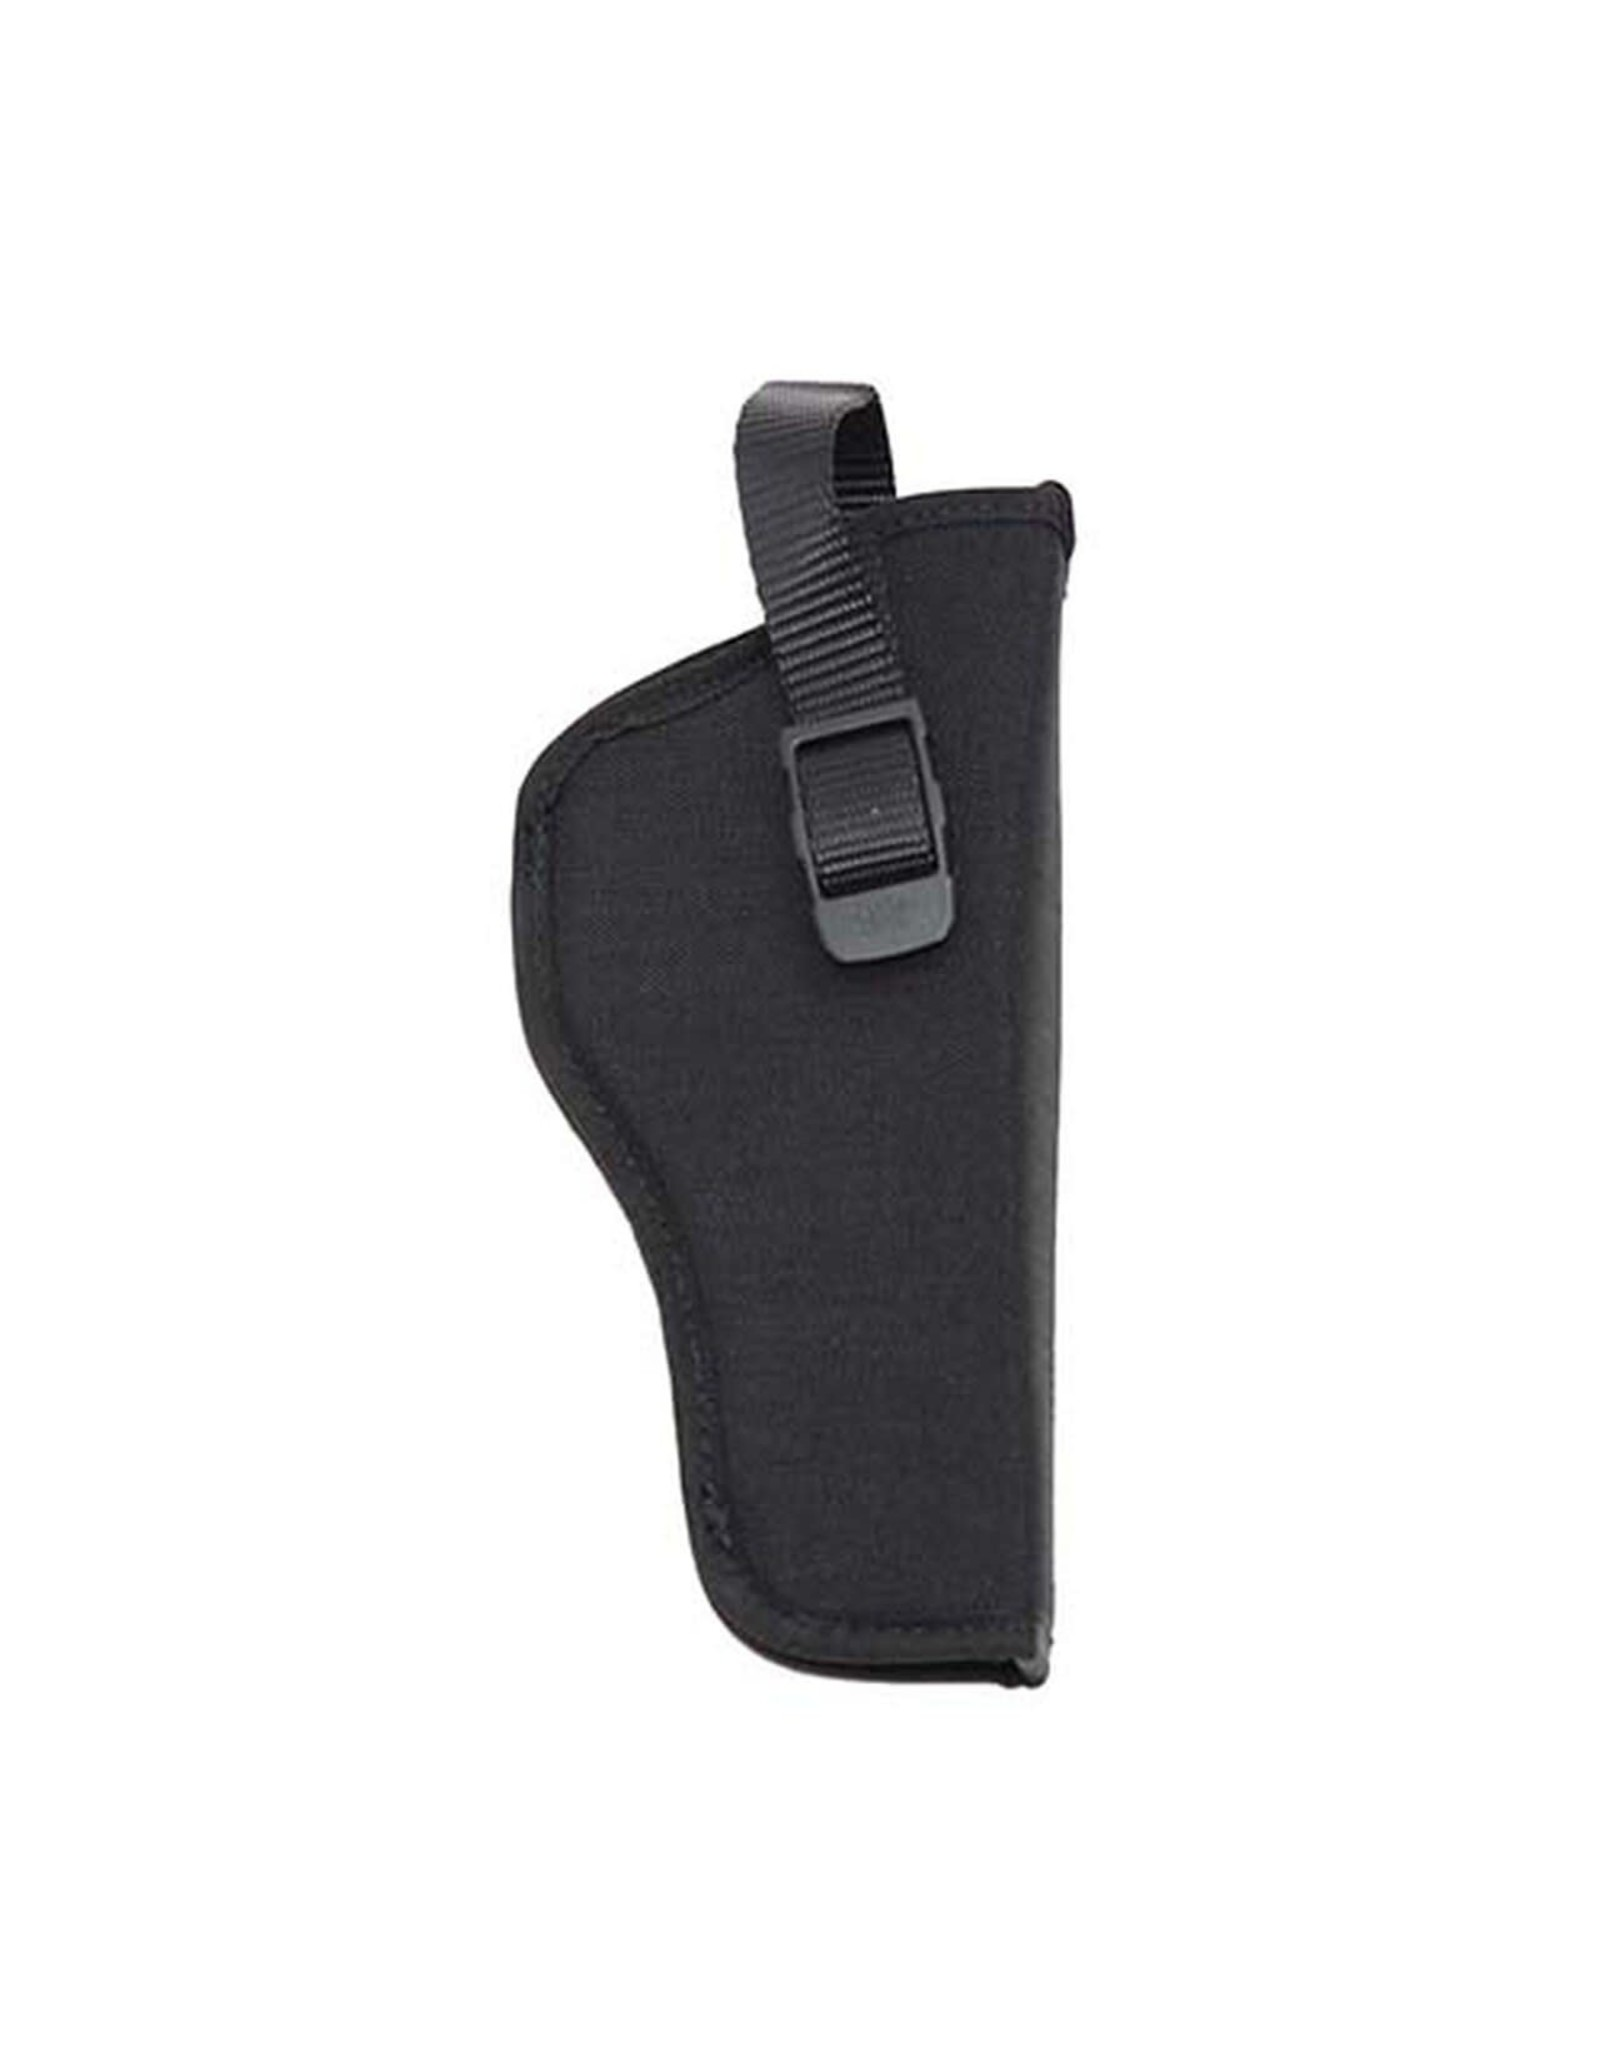 "Blackhawk Blackhawk Holster for 4.5-5"" Large Autos Open Ended - RH"